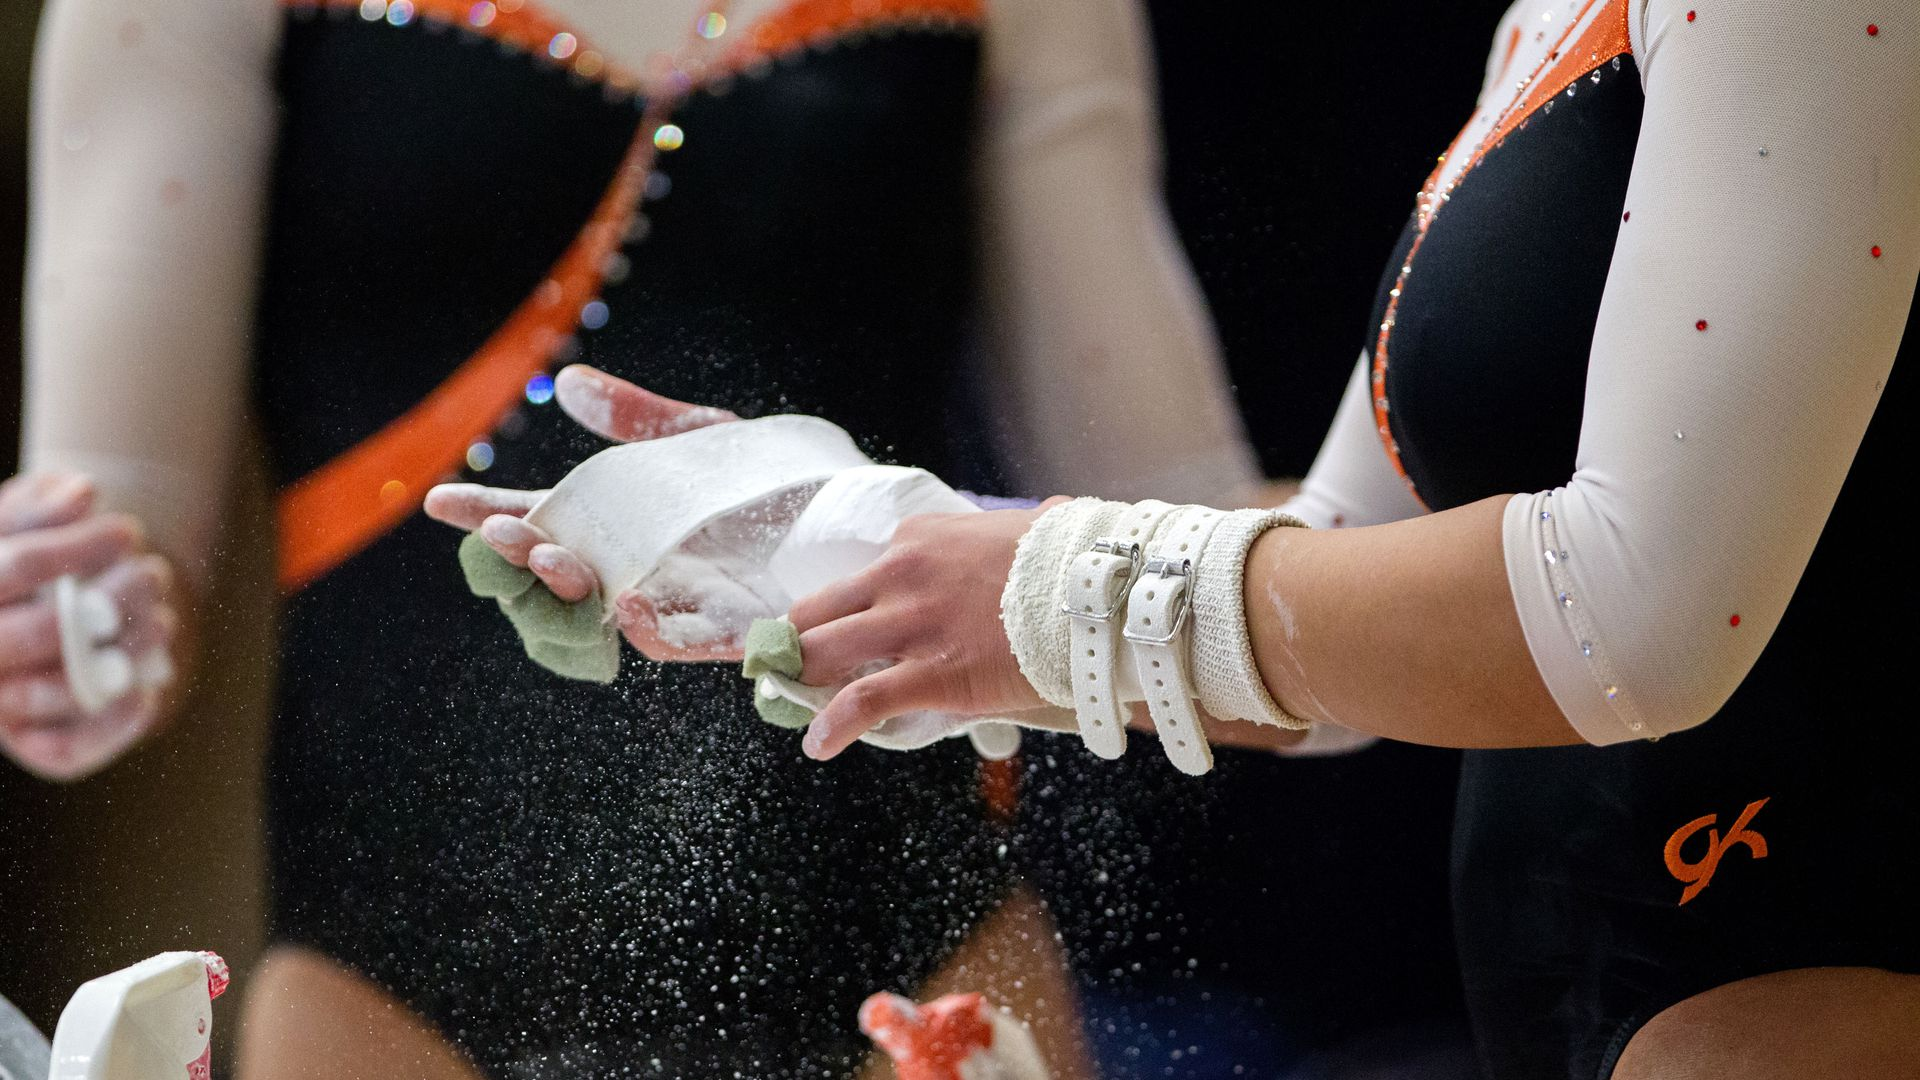 Gymnasts chalk their hands.